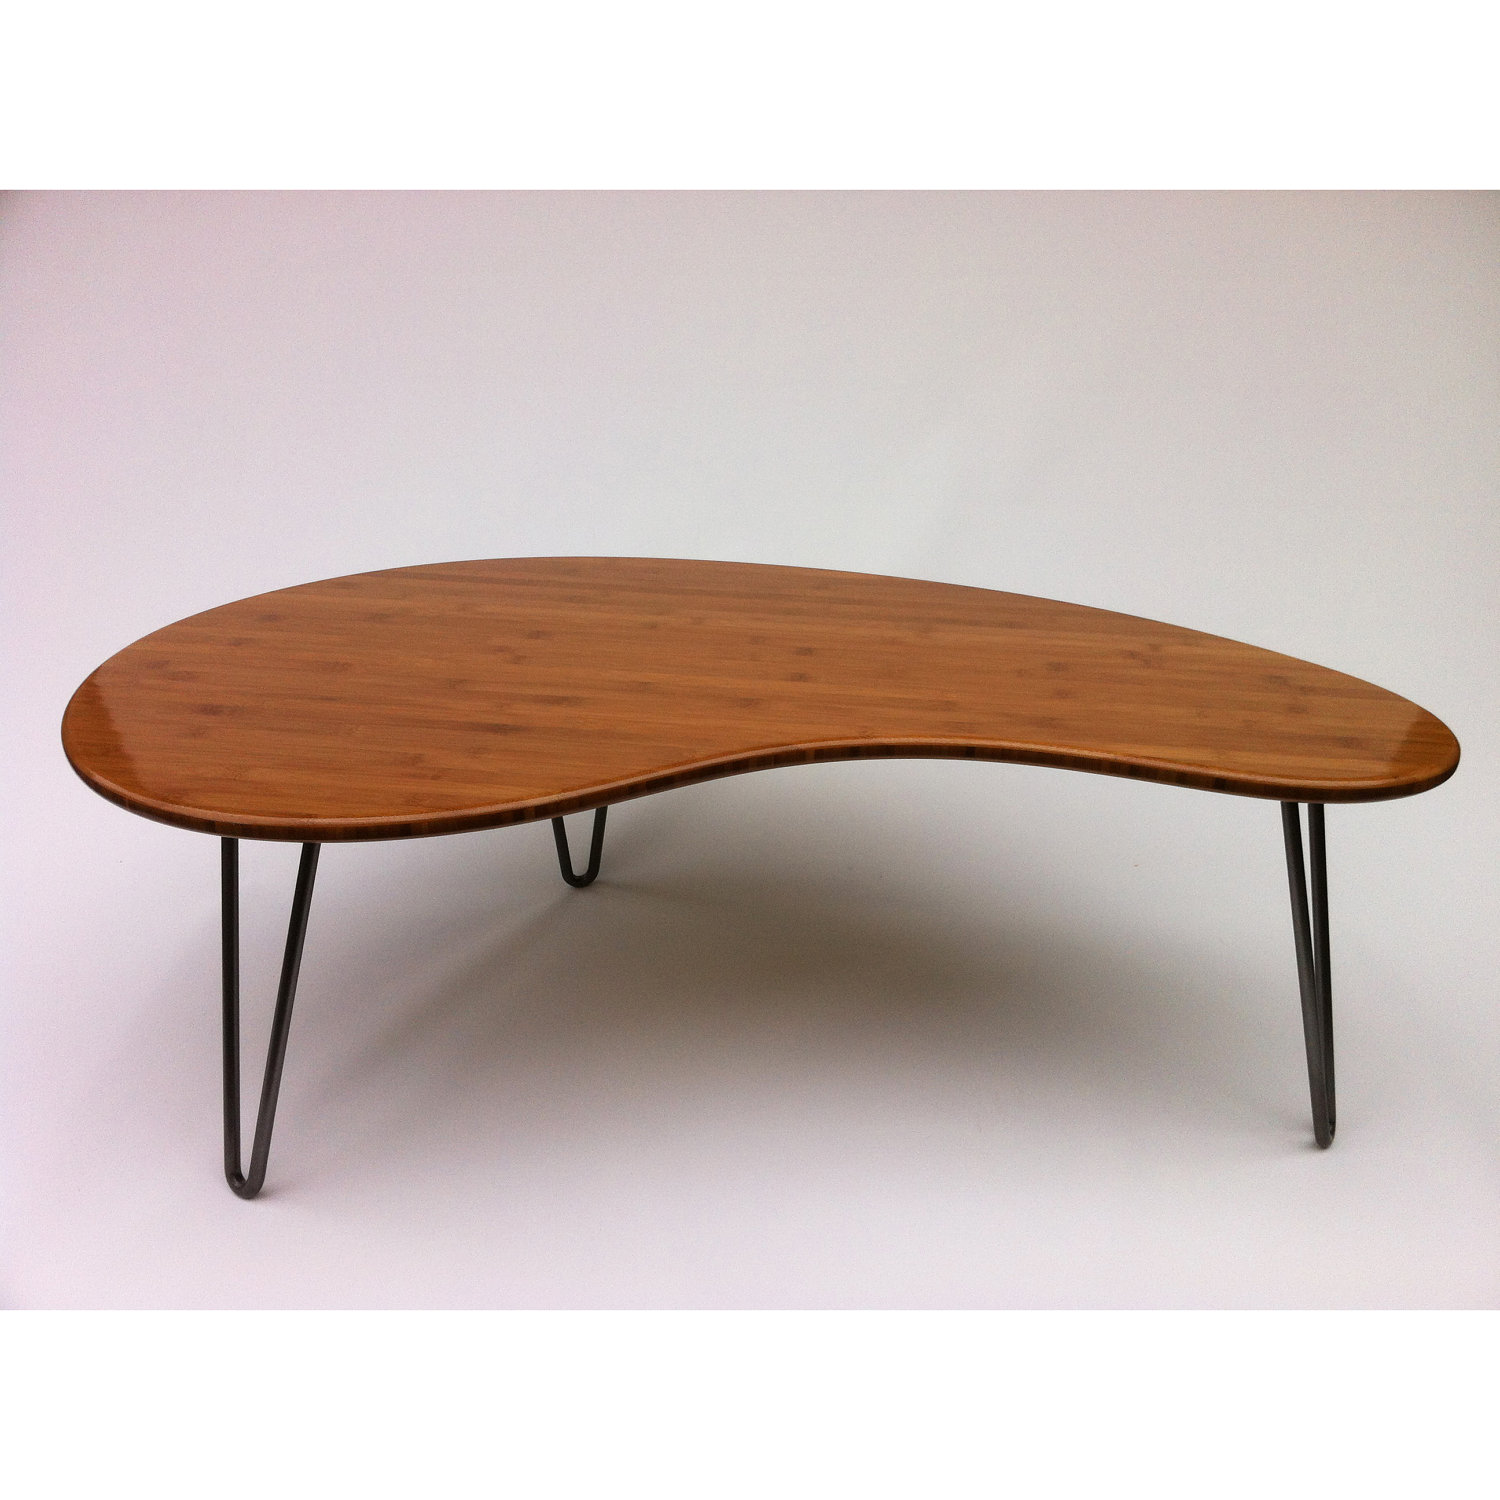 Modern Wood Coffee Table Reclaimed Metal Mid Century Round Natural Diy Contemporary Coffee Table Mid Century Modern Best (View 3 of 10)